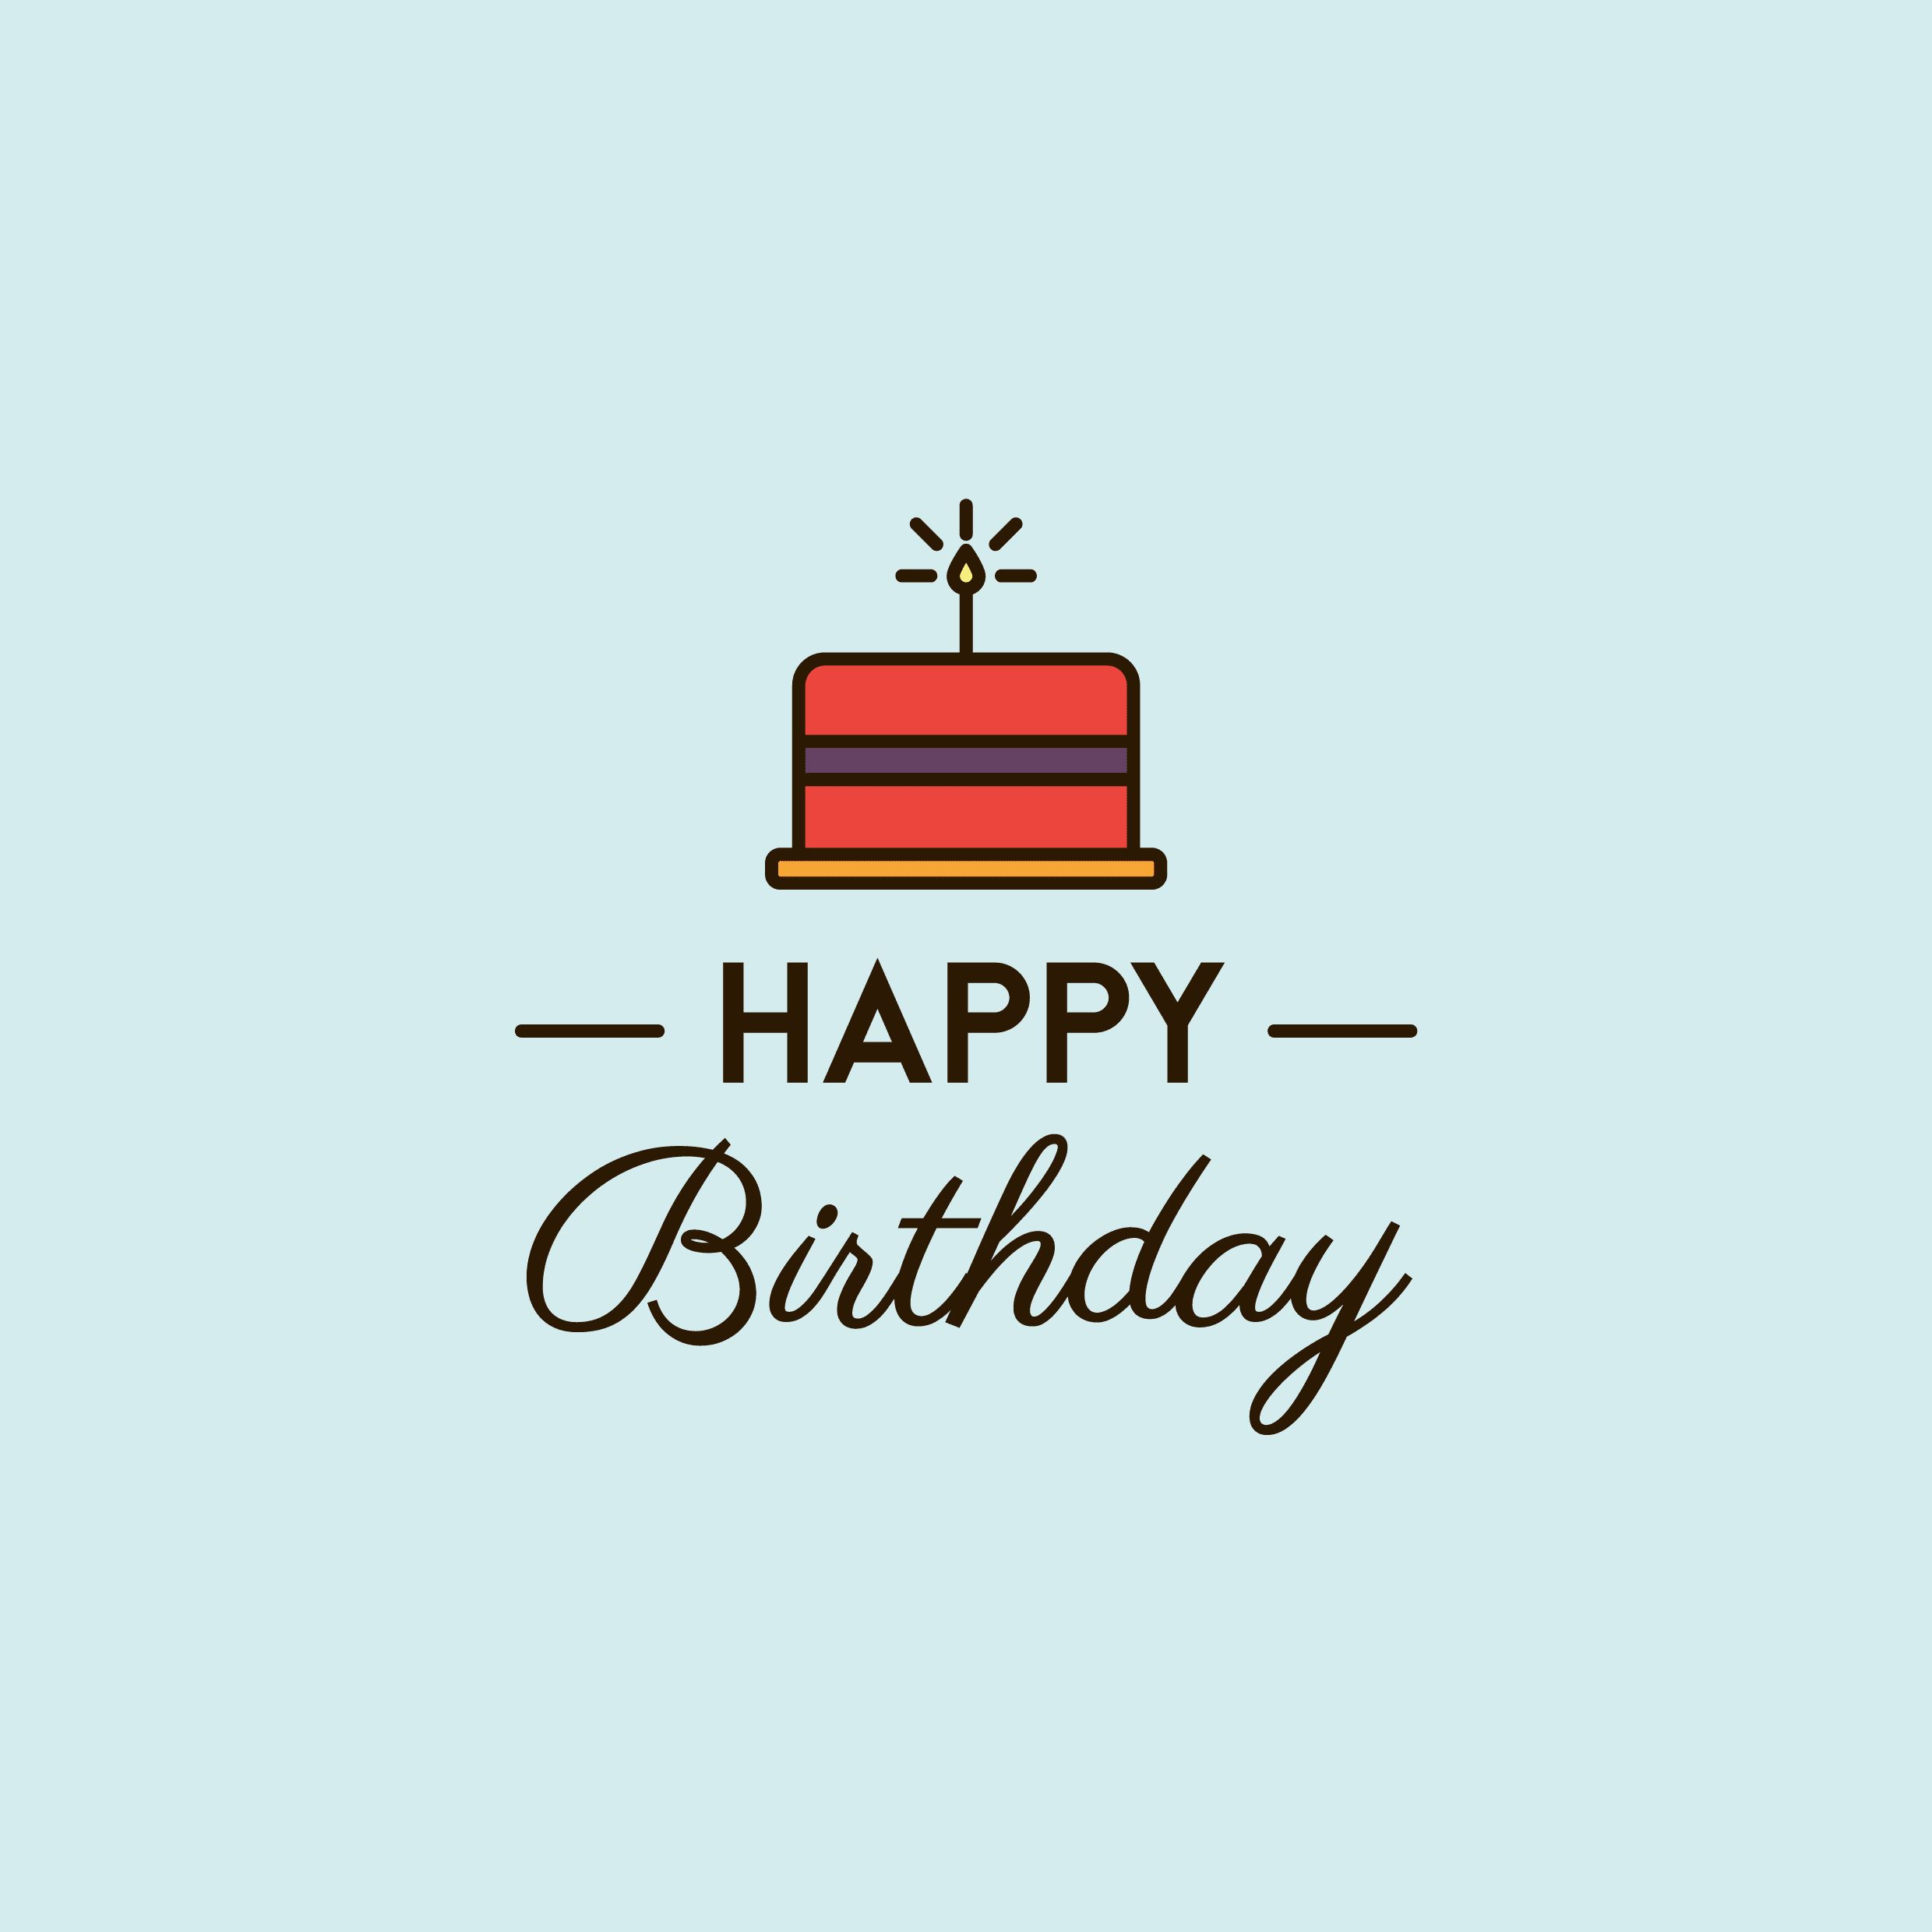 a picture of a happy birthday sign ; amazing-happy-birthday-signs-for-facebook-concept-fantastic-happy-birthday-signs-for-facebook-ideas